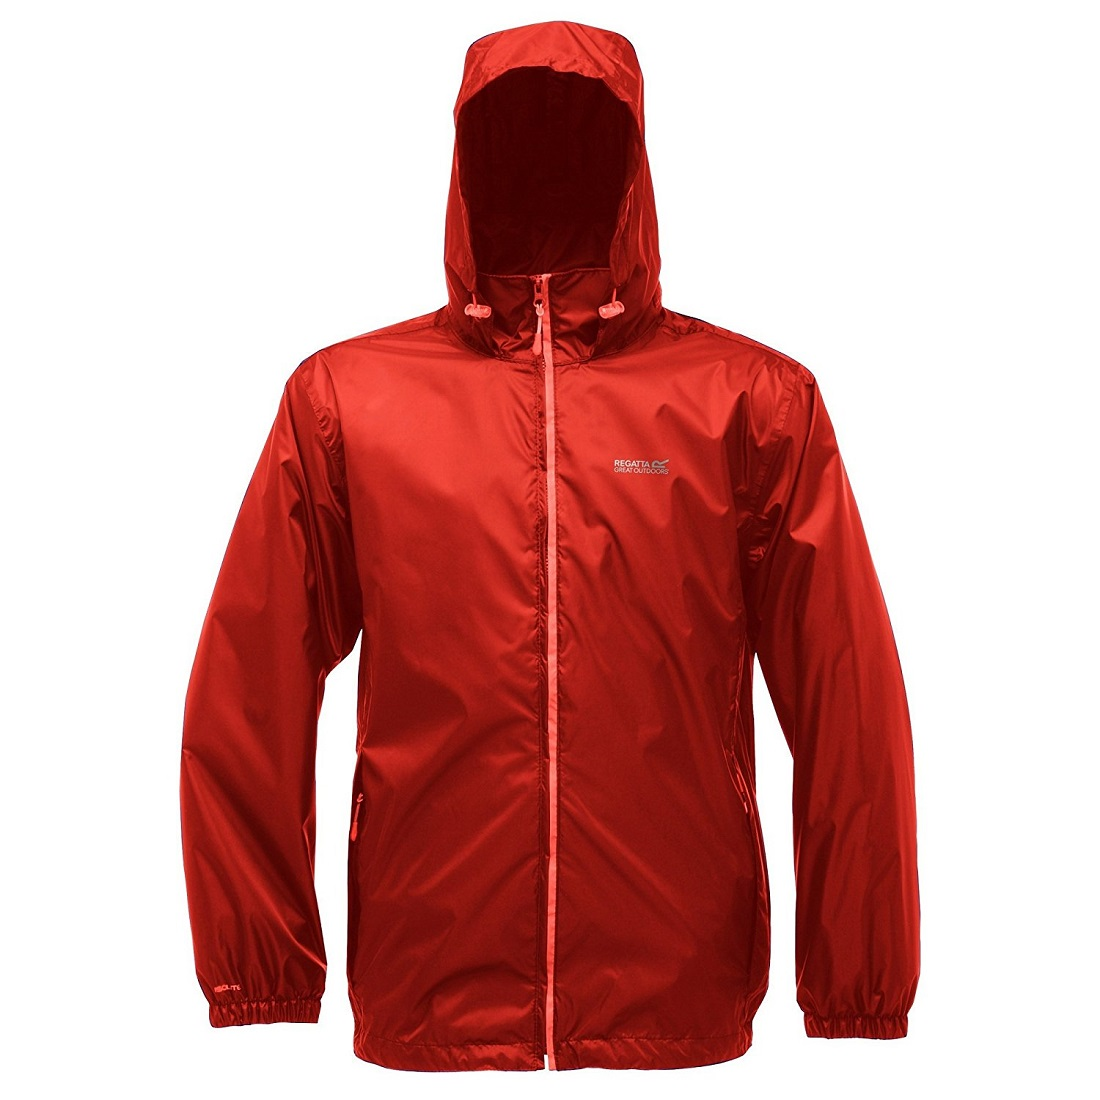 Mens-Regatta-Dare2b-Lightweight-Waterproof-Windproof-Jacket-Clearance-RRP-70-00 thumbnail 26